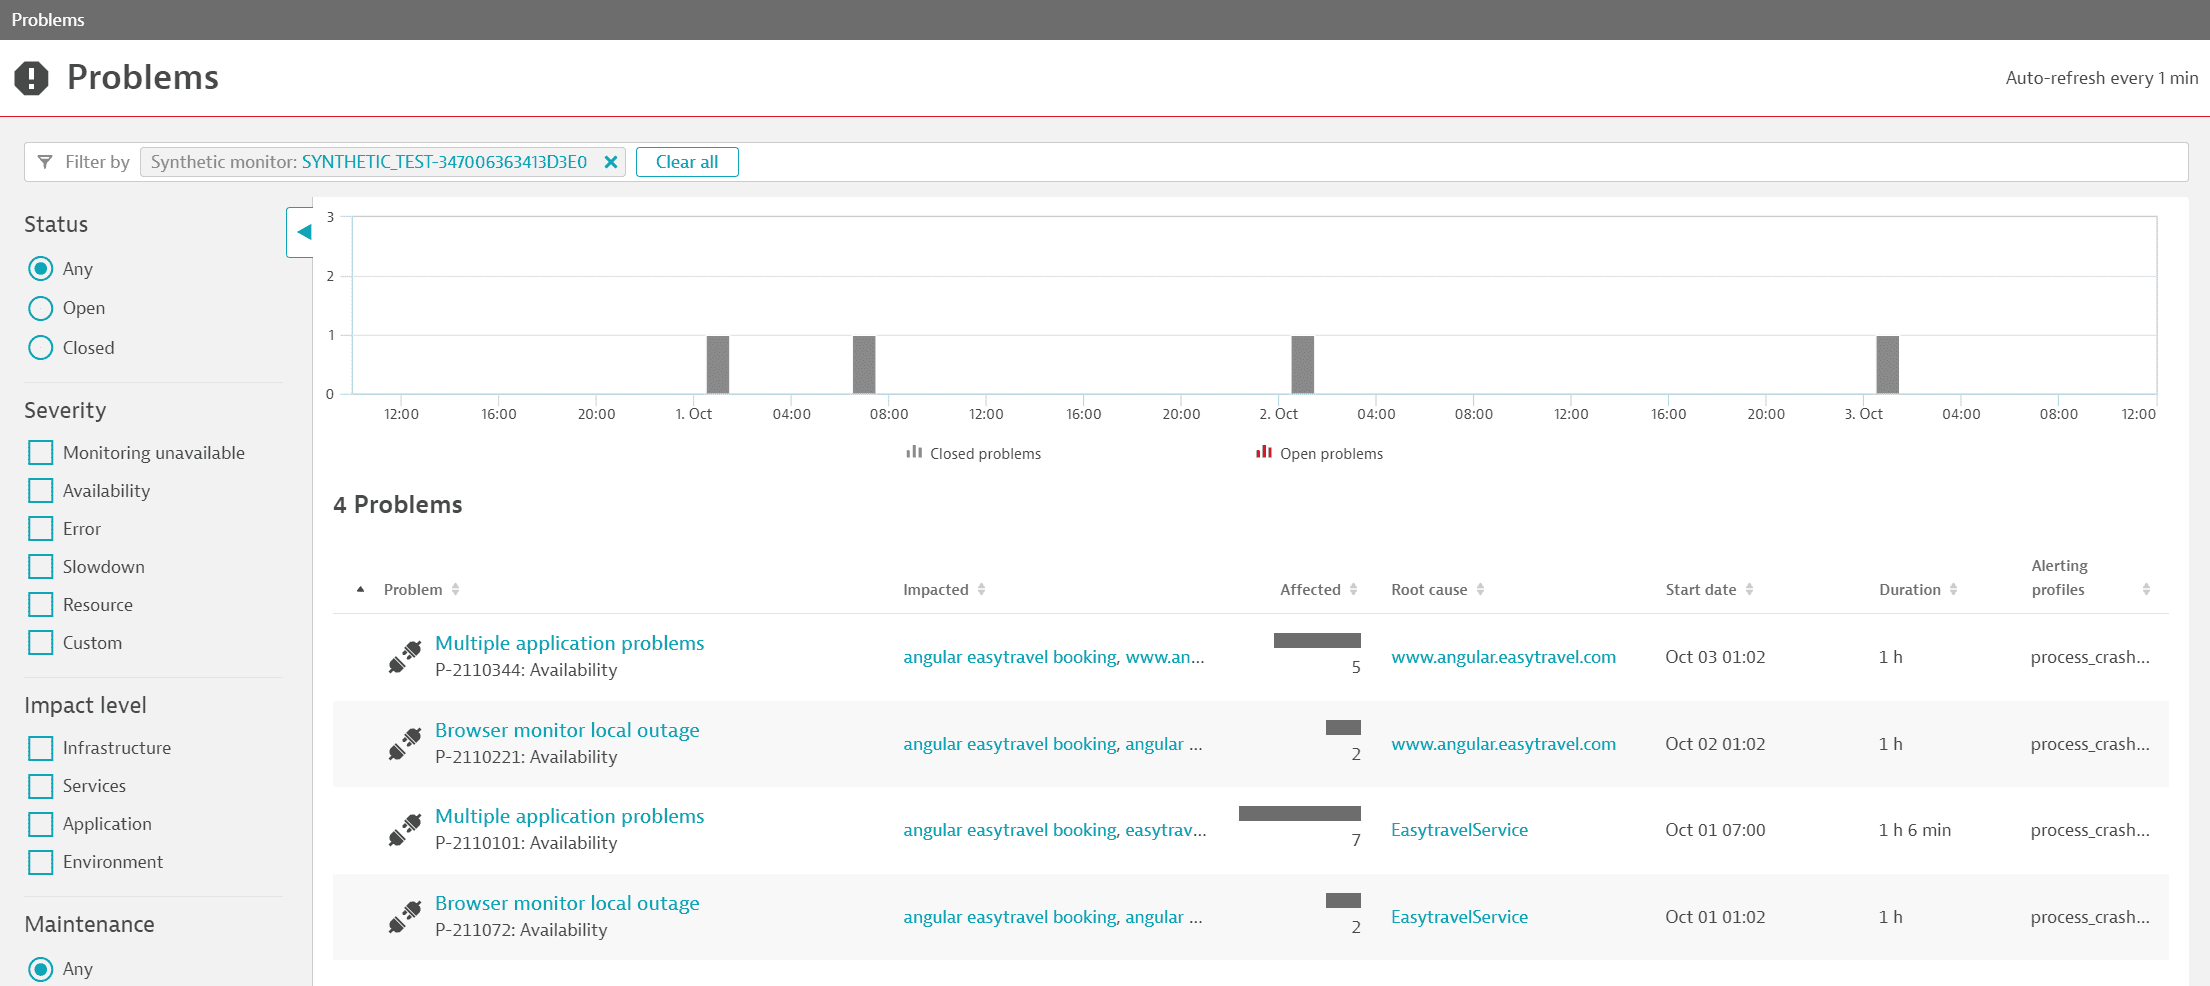 Problems page filtered by a synthetic monitor